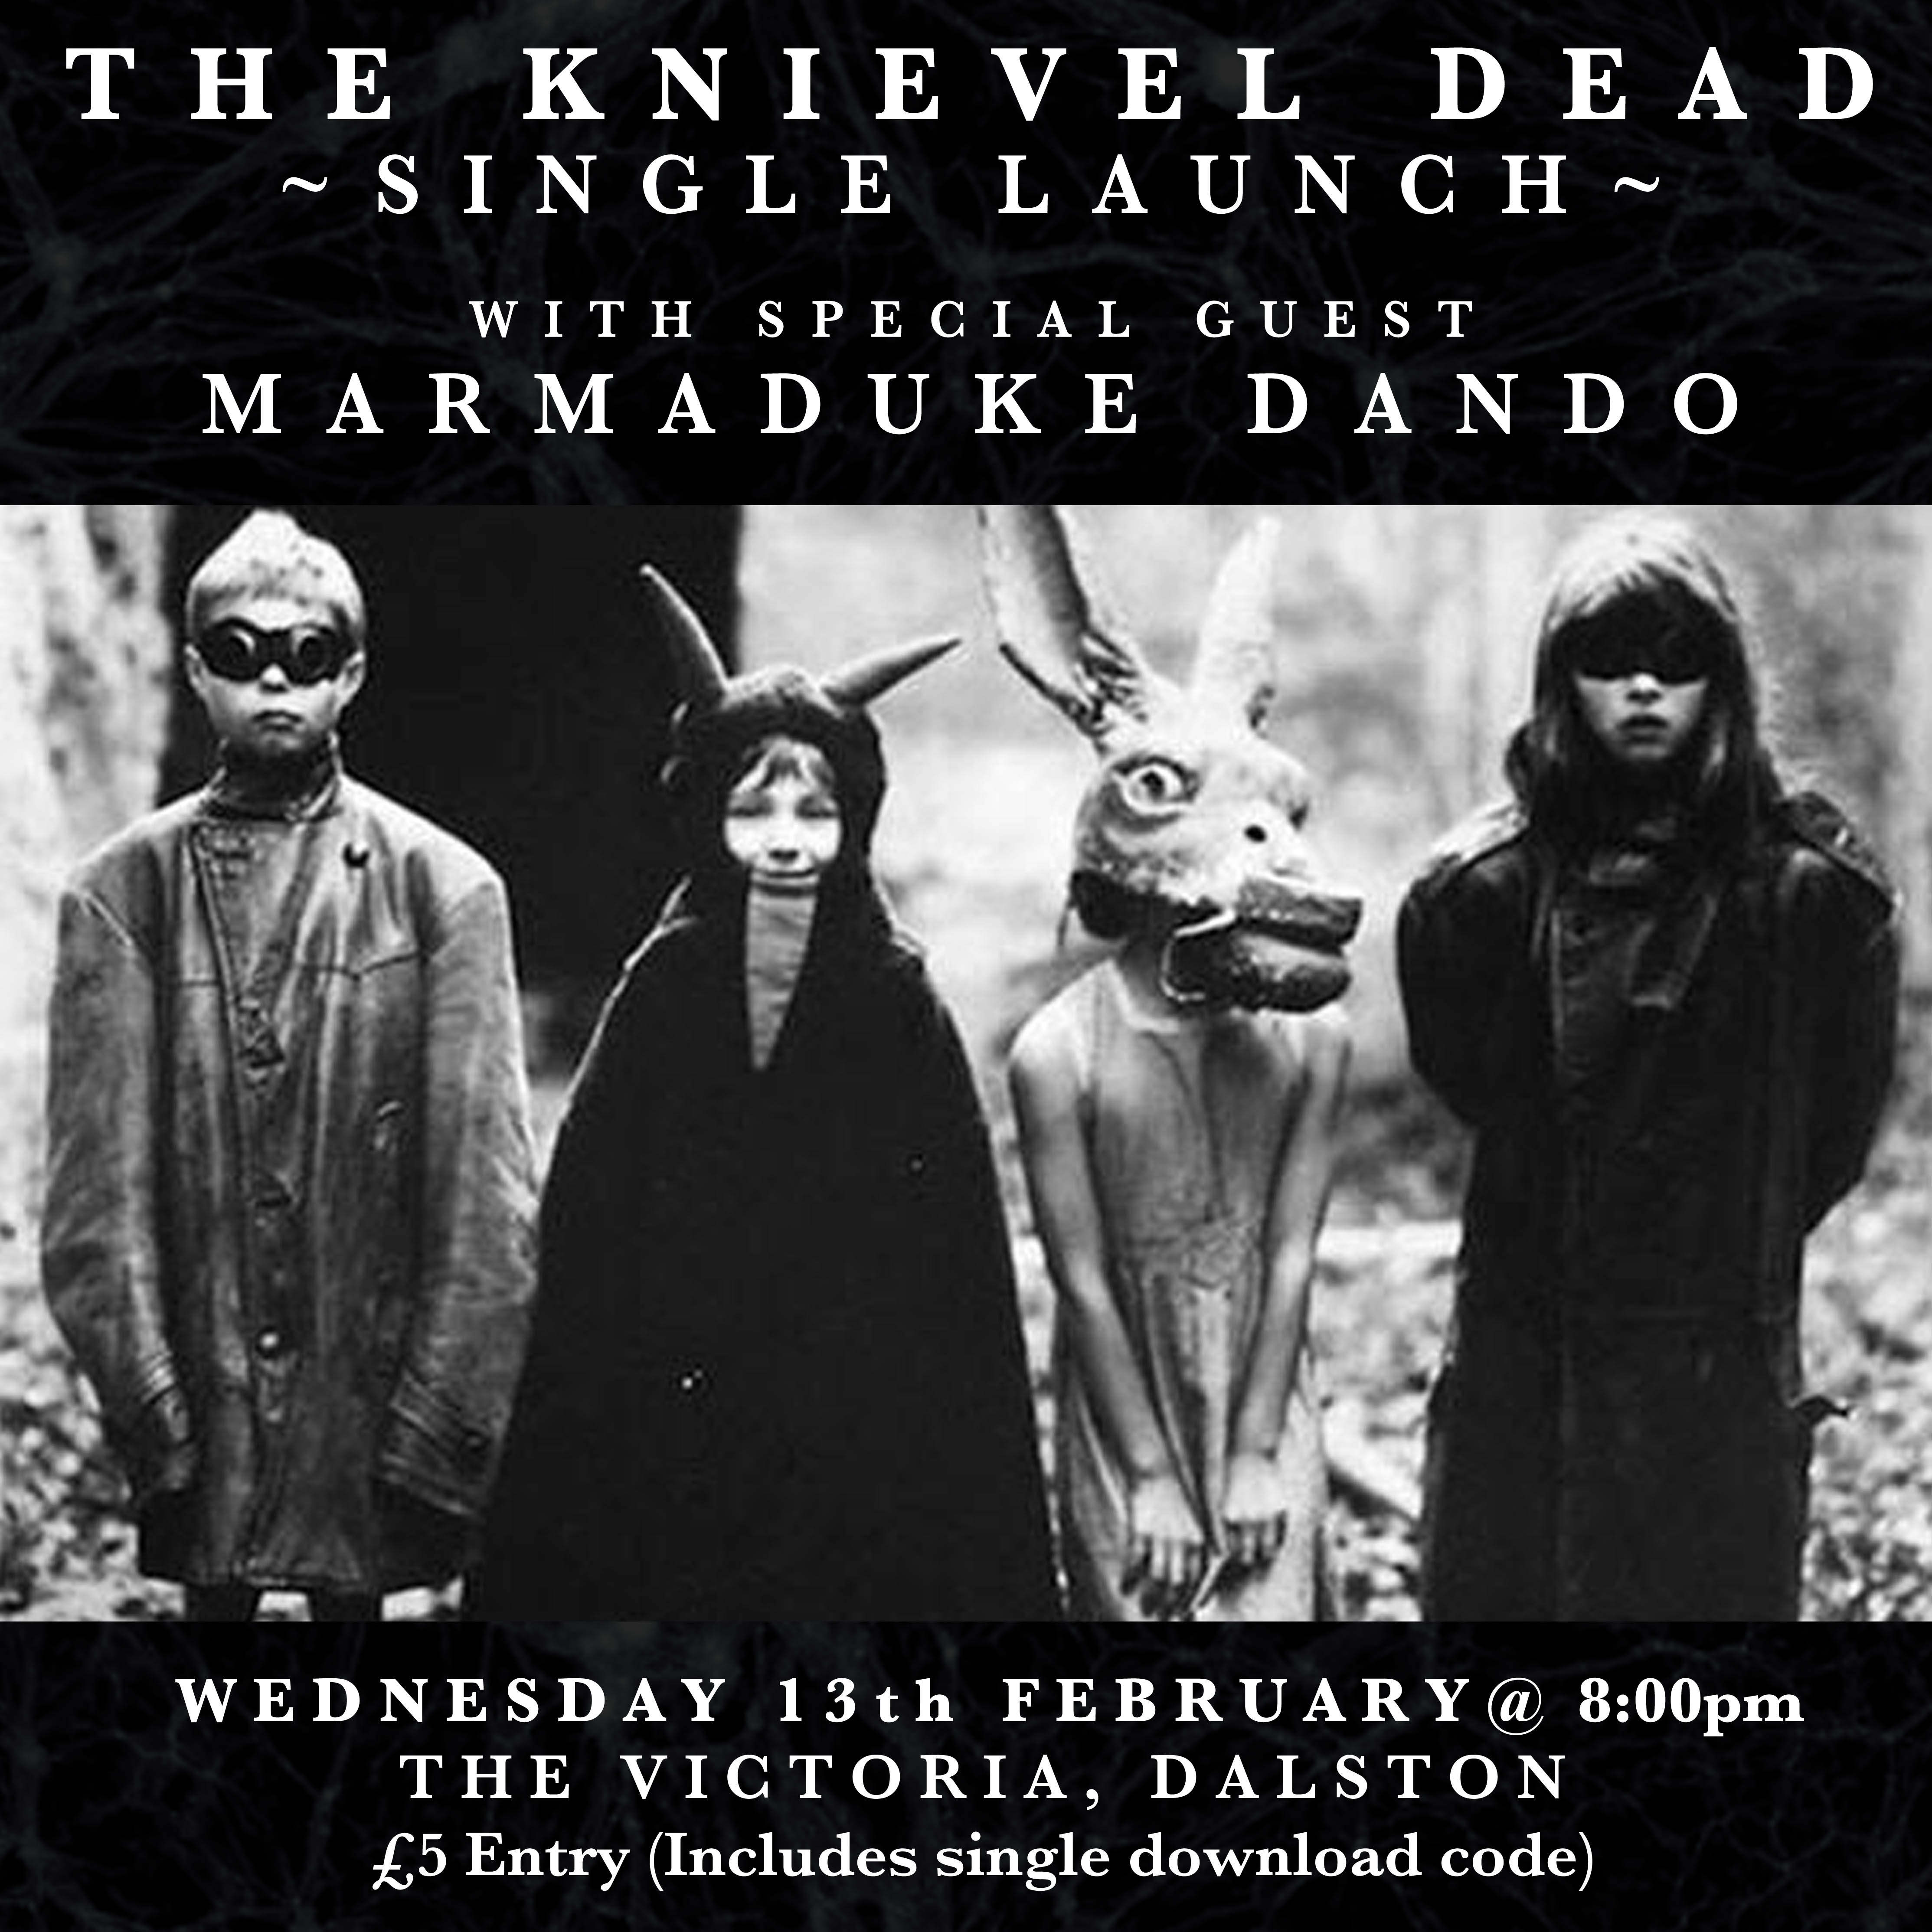 The Victoria presents The Knievel Dead (single launch) + guests Marmaduke Dando at The Victoria promotional image